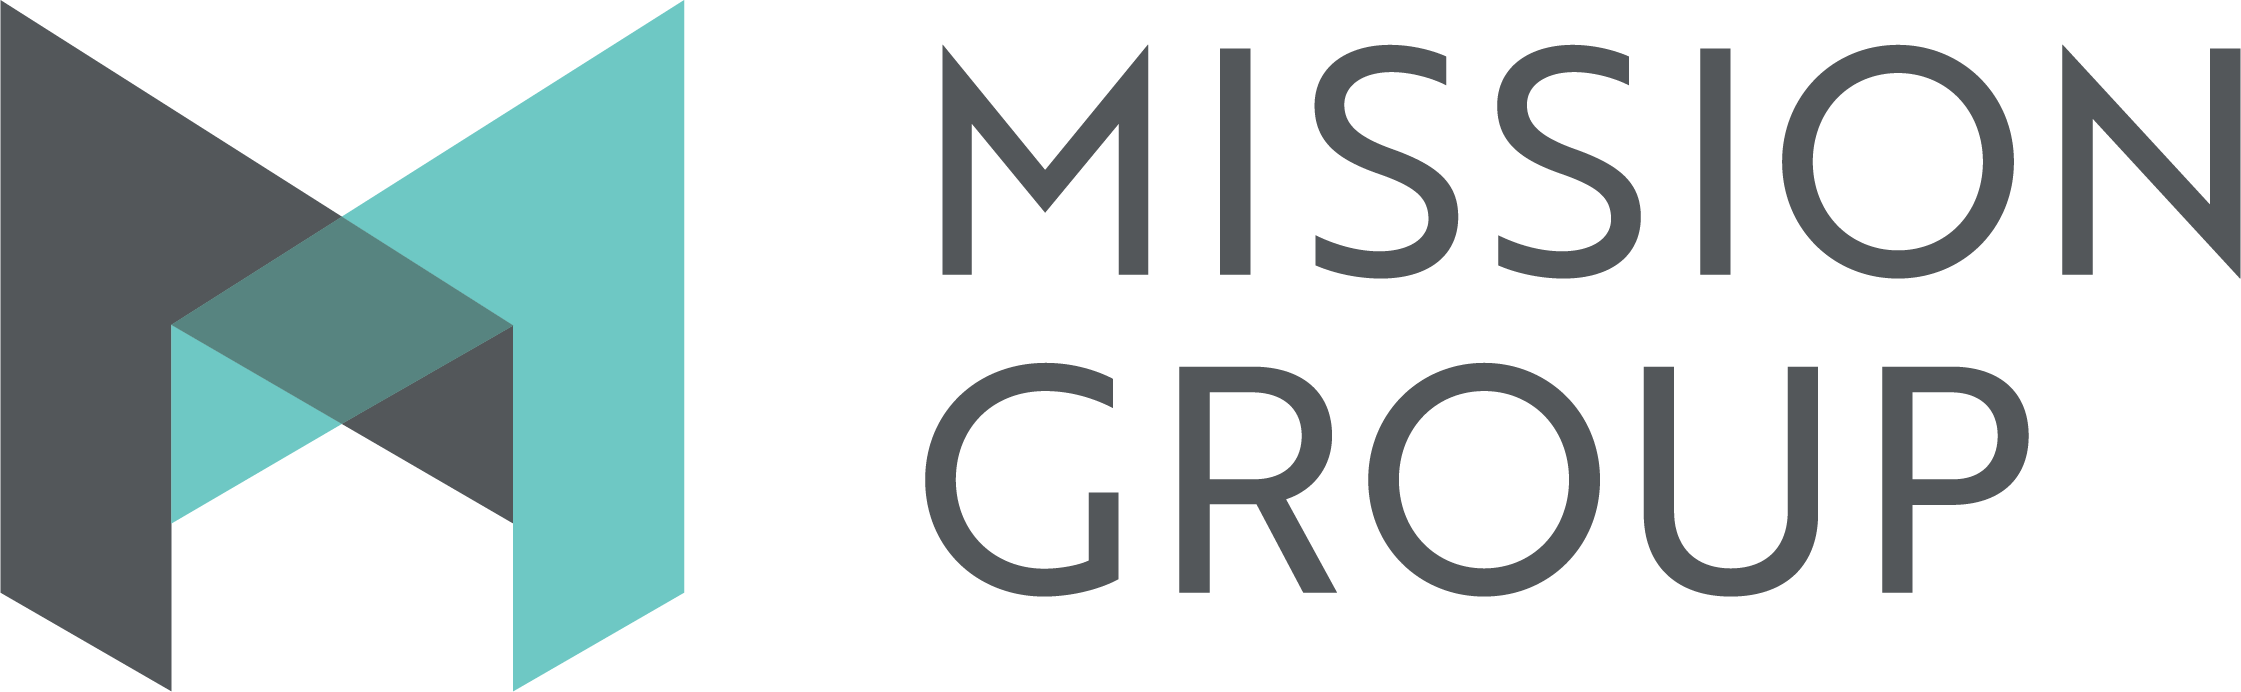 Mission Group